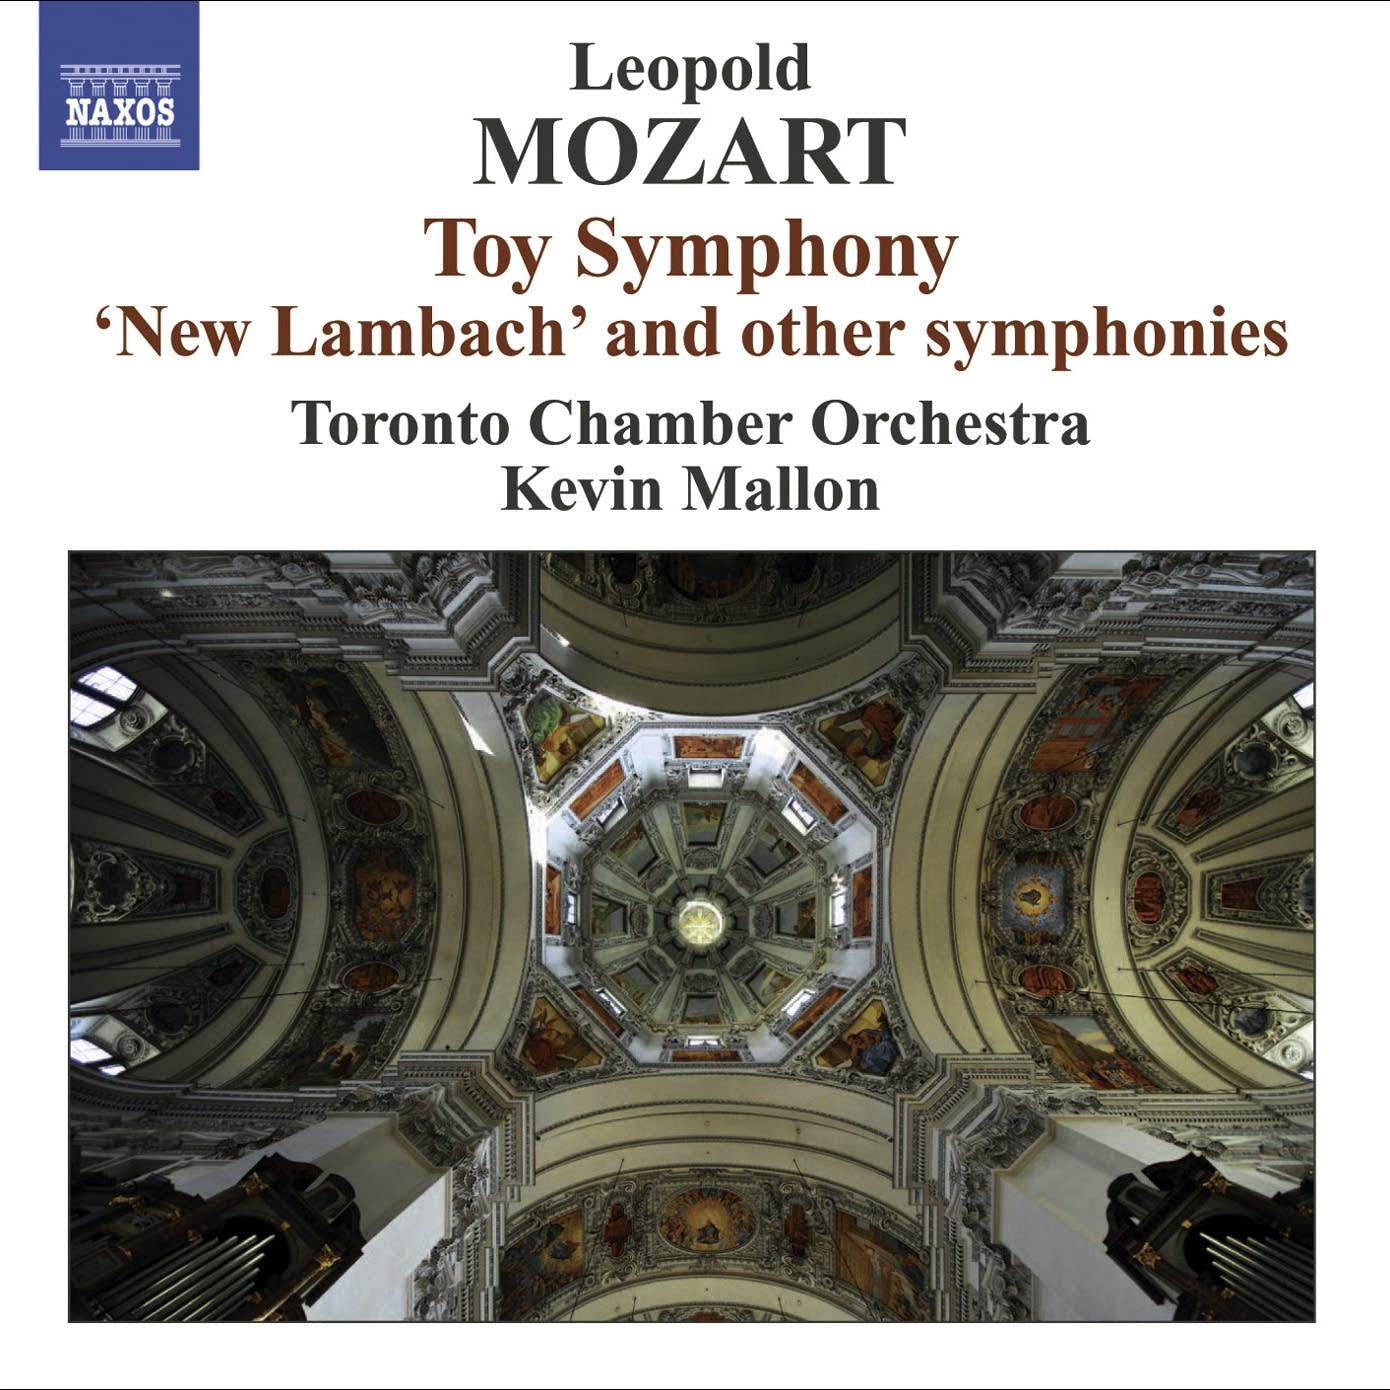 Daily Download: Leopold Mozart - Toy Symphony: Finale